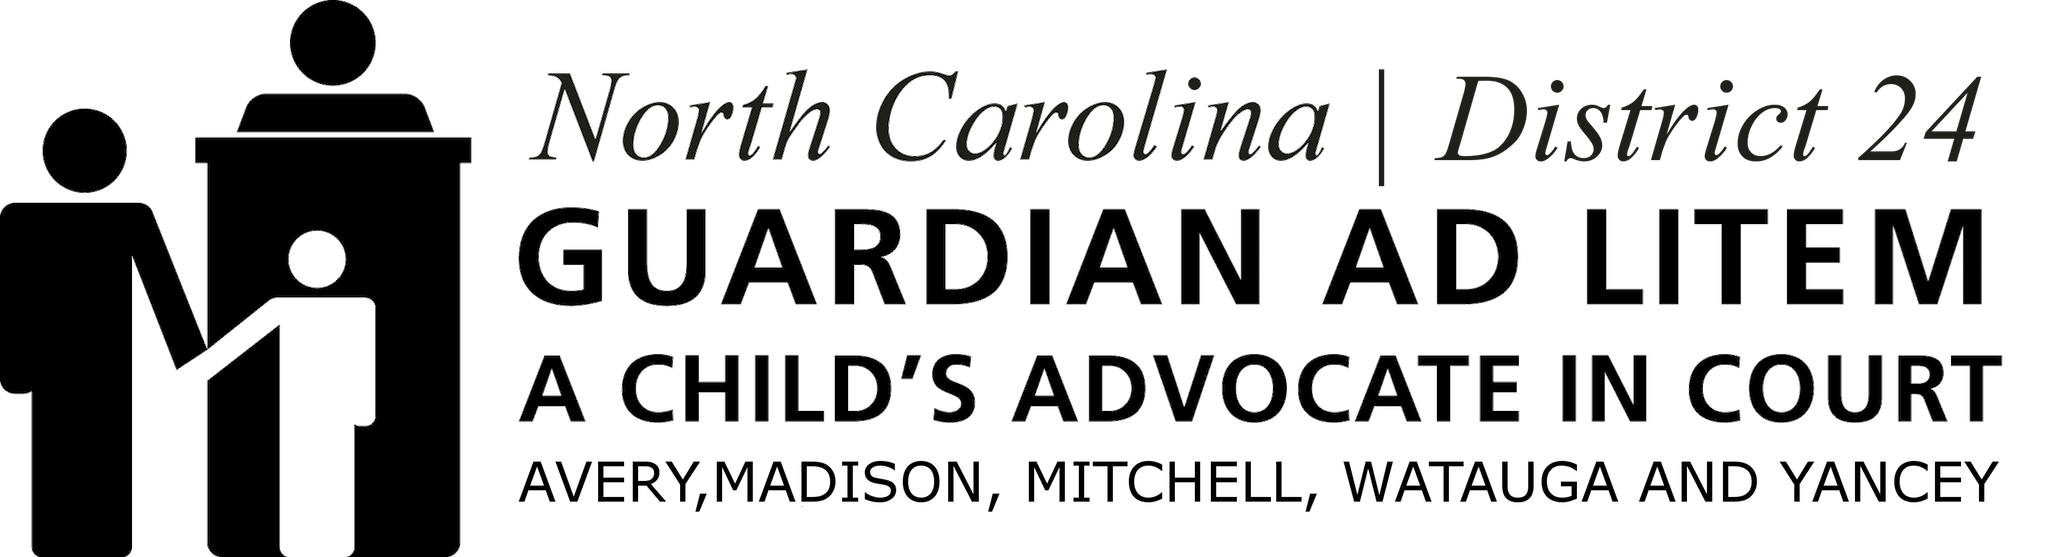 NC GUARDIAN AD LITEM 24th JUDICIAL DISTRICT